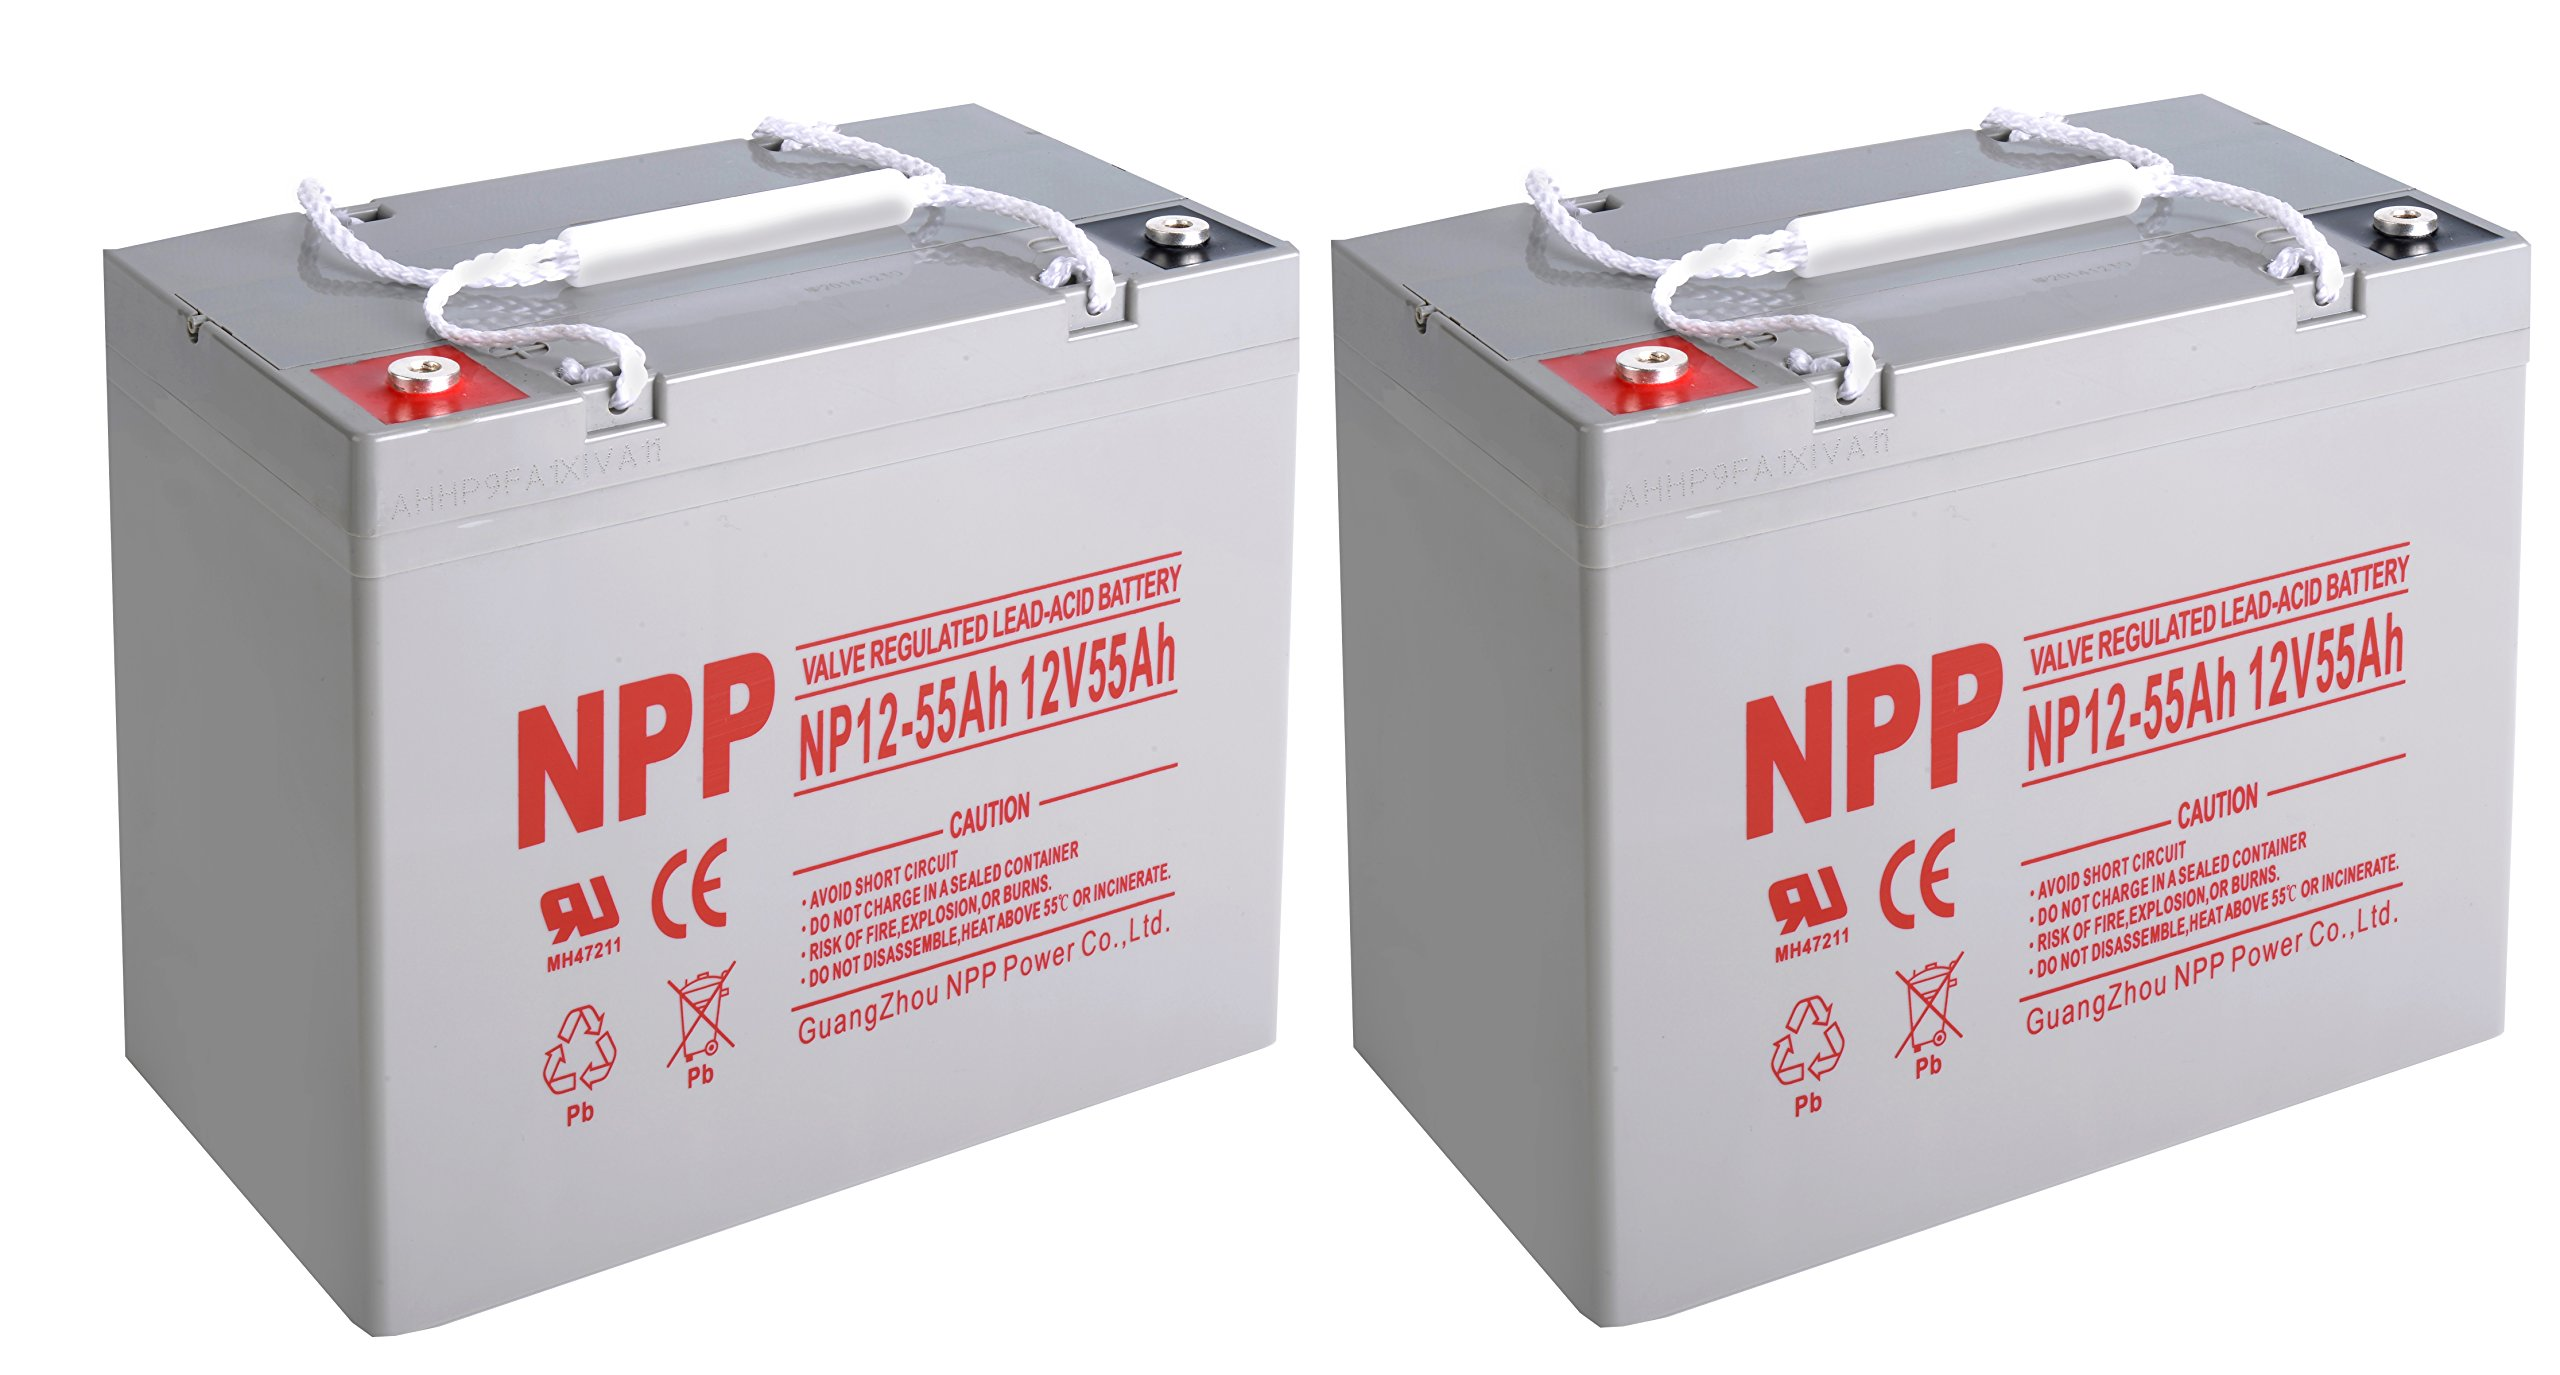 NPP NP12-55Ah Rechargeable Sealed Lead Acid 12V 55Ah Battery with Button Style Terminals / (2pcs)